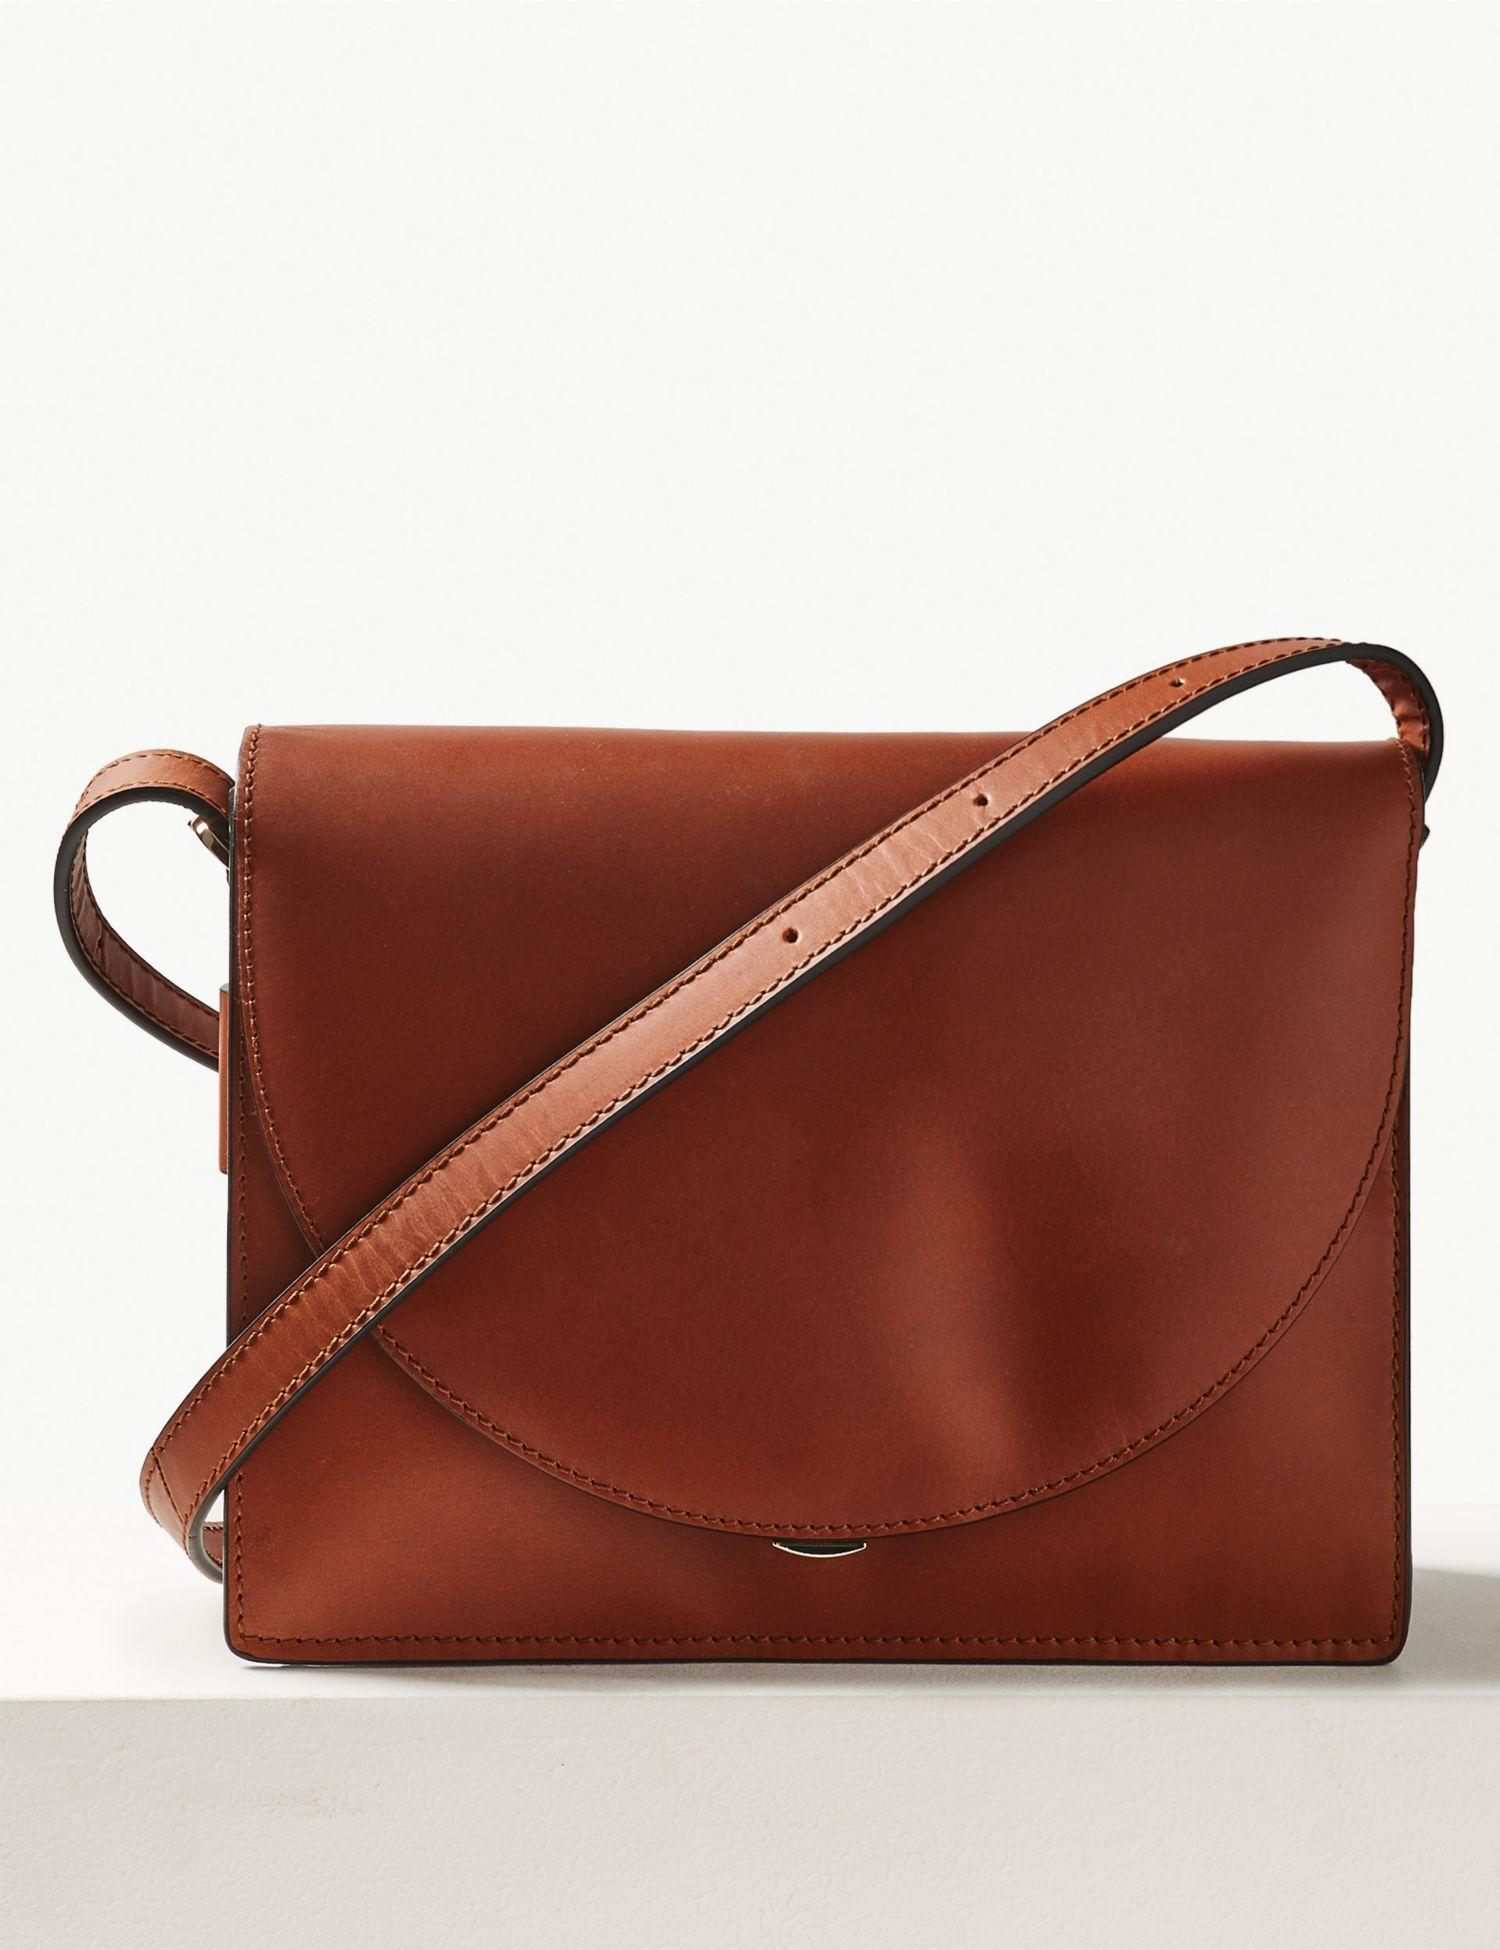 29aa293747b Tan Leather Bag Marks And Spencer